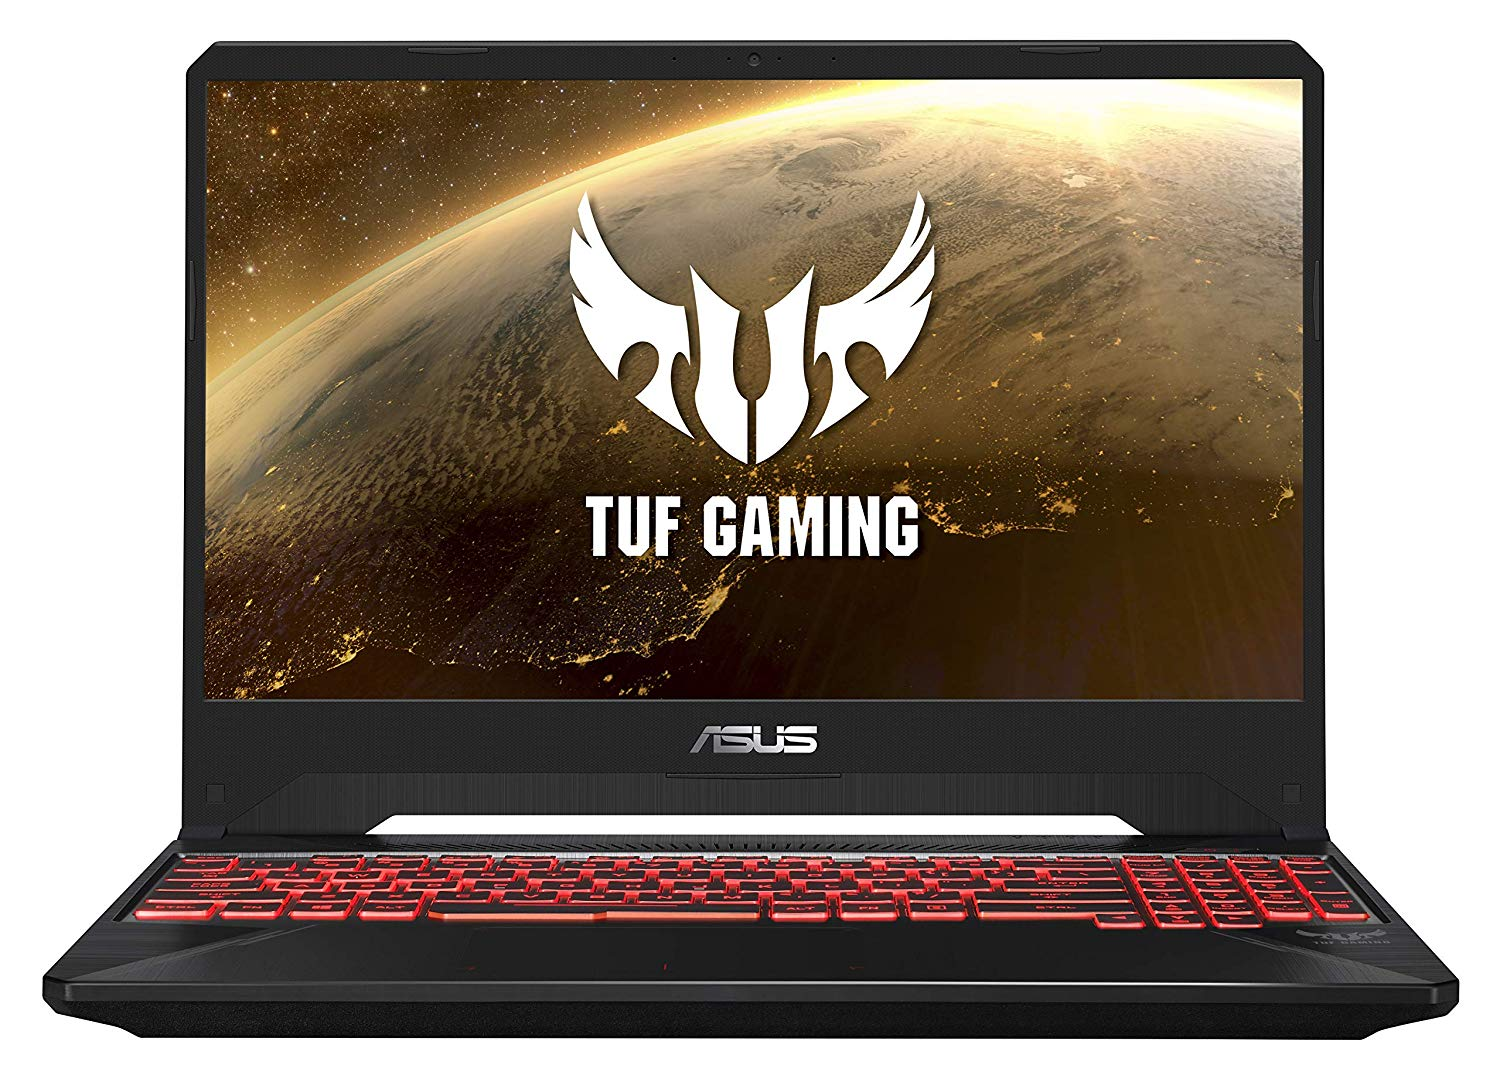 "ASUS TUF Gaming FX505GD 15.6"" FHD Laptop GTX 1050 4GB Graphics Laptop"